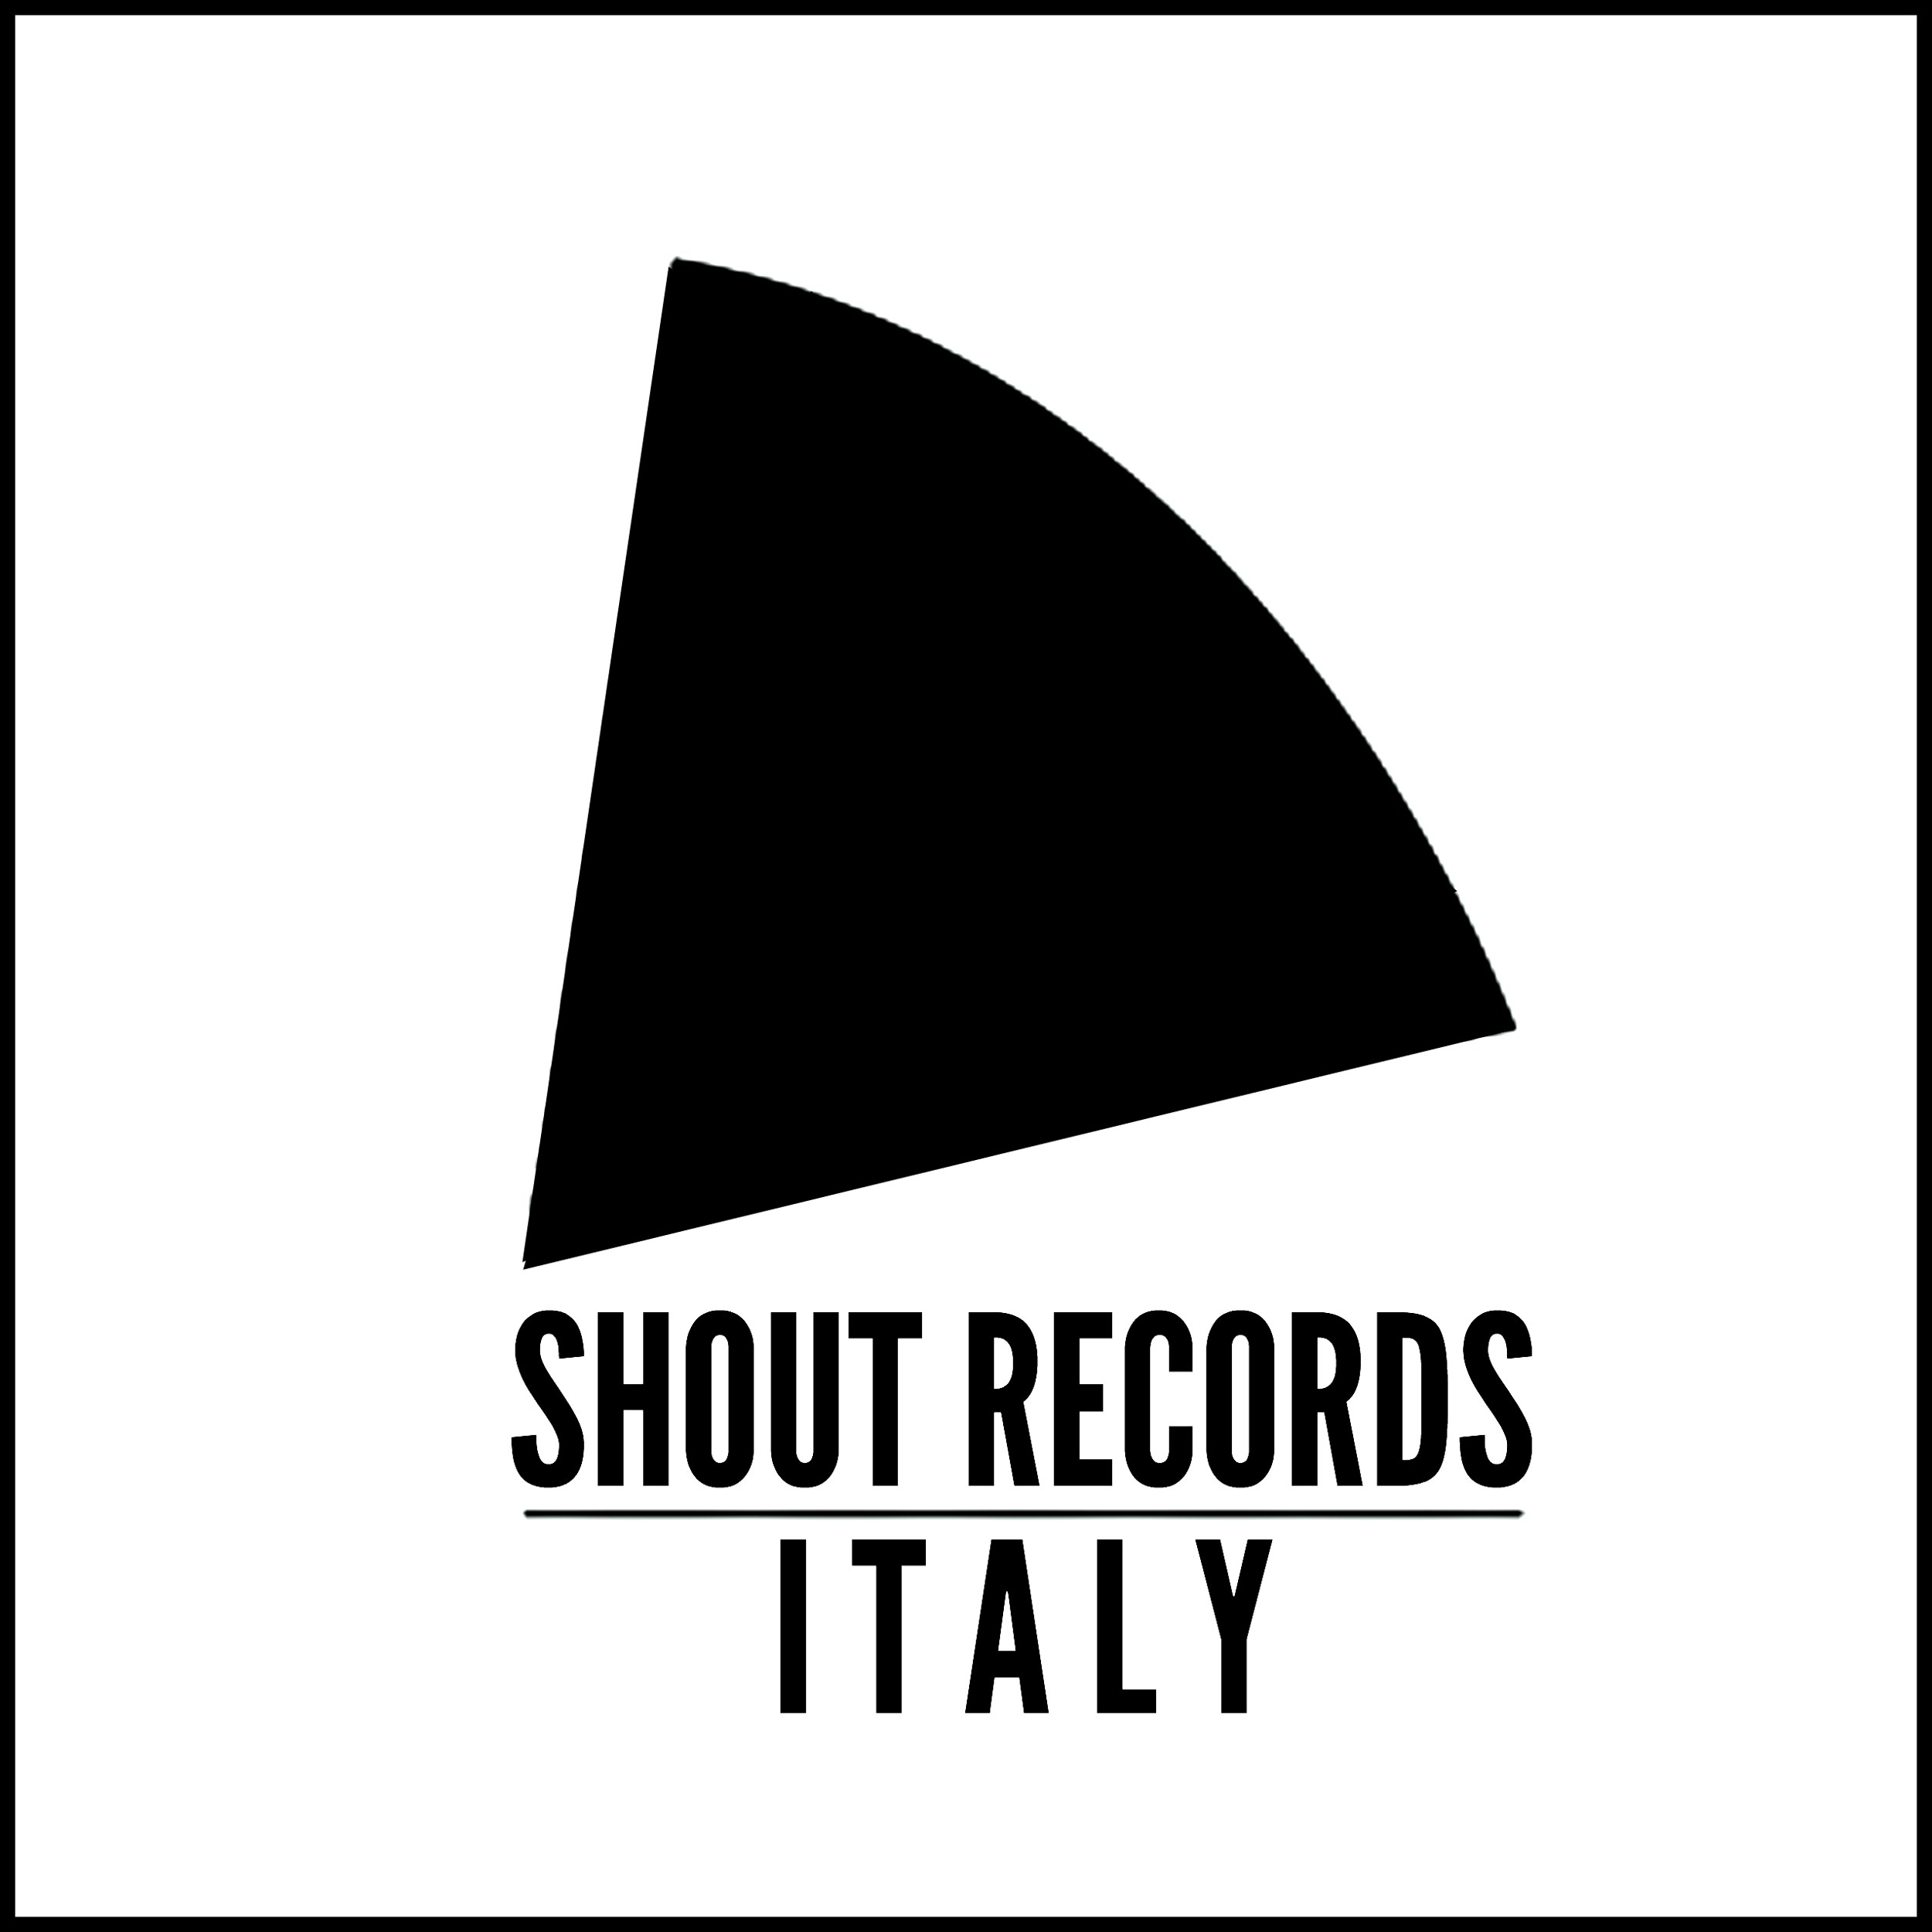 Shout Records Italy